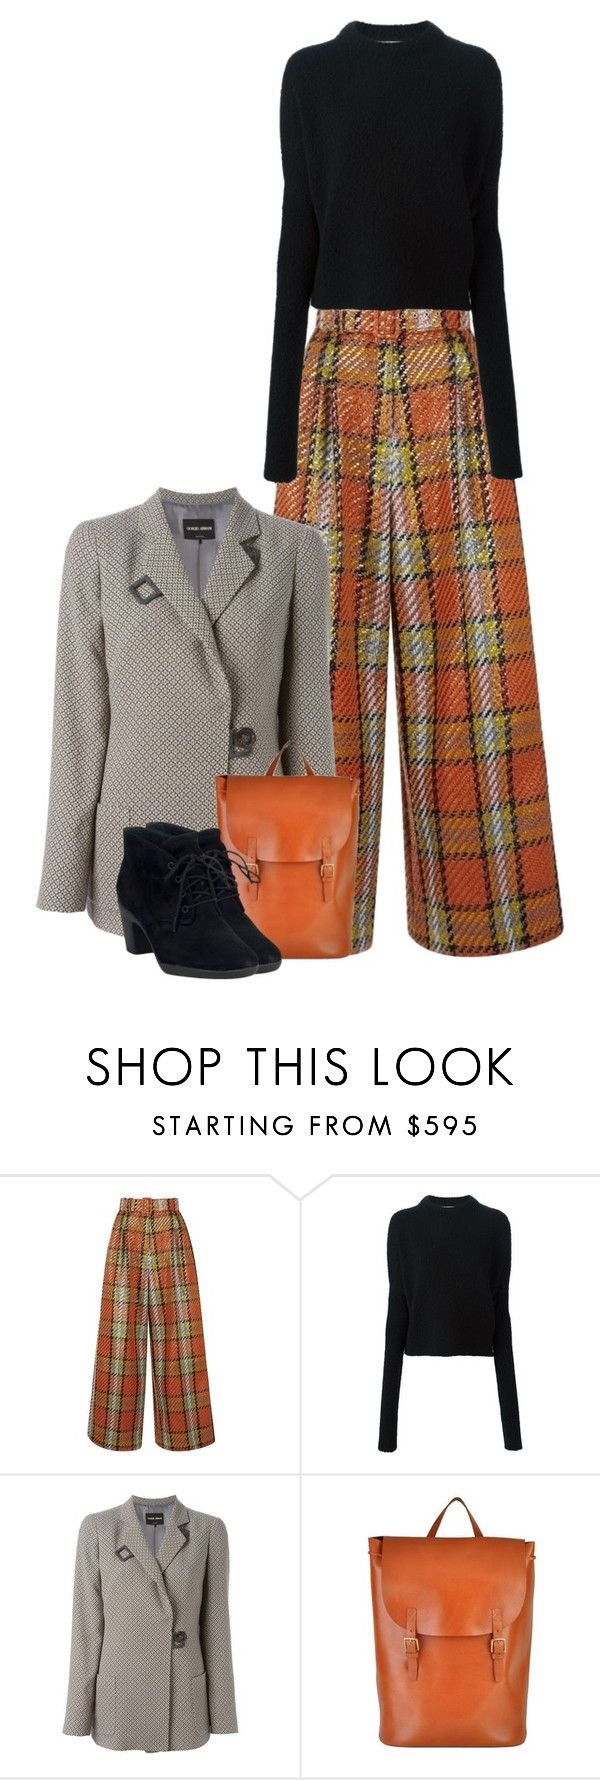 """Tartan"" by pepitarita ❤ liked on Polyvore featuring Emilia Wickstead, Victoria Beckham, Giorgio Armani and Clarks"